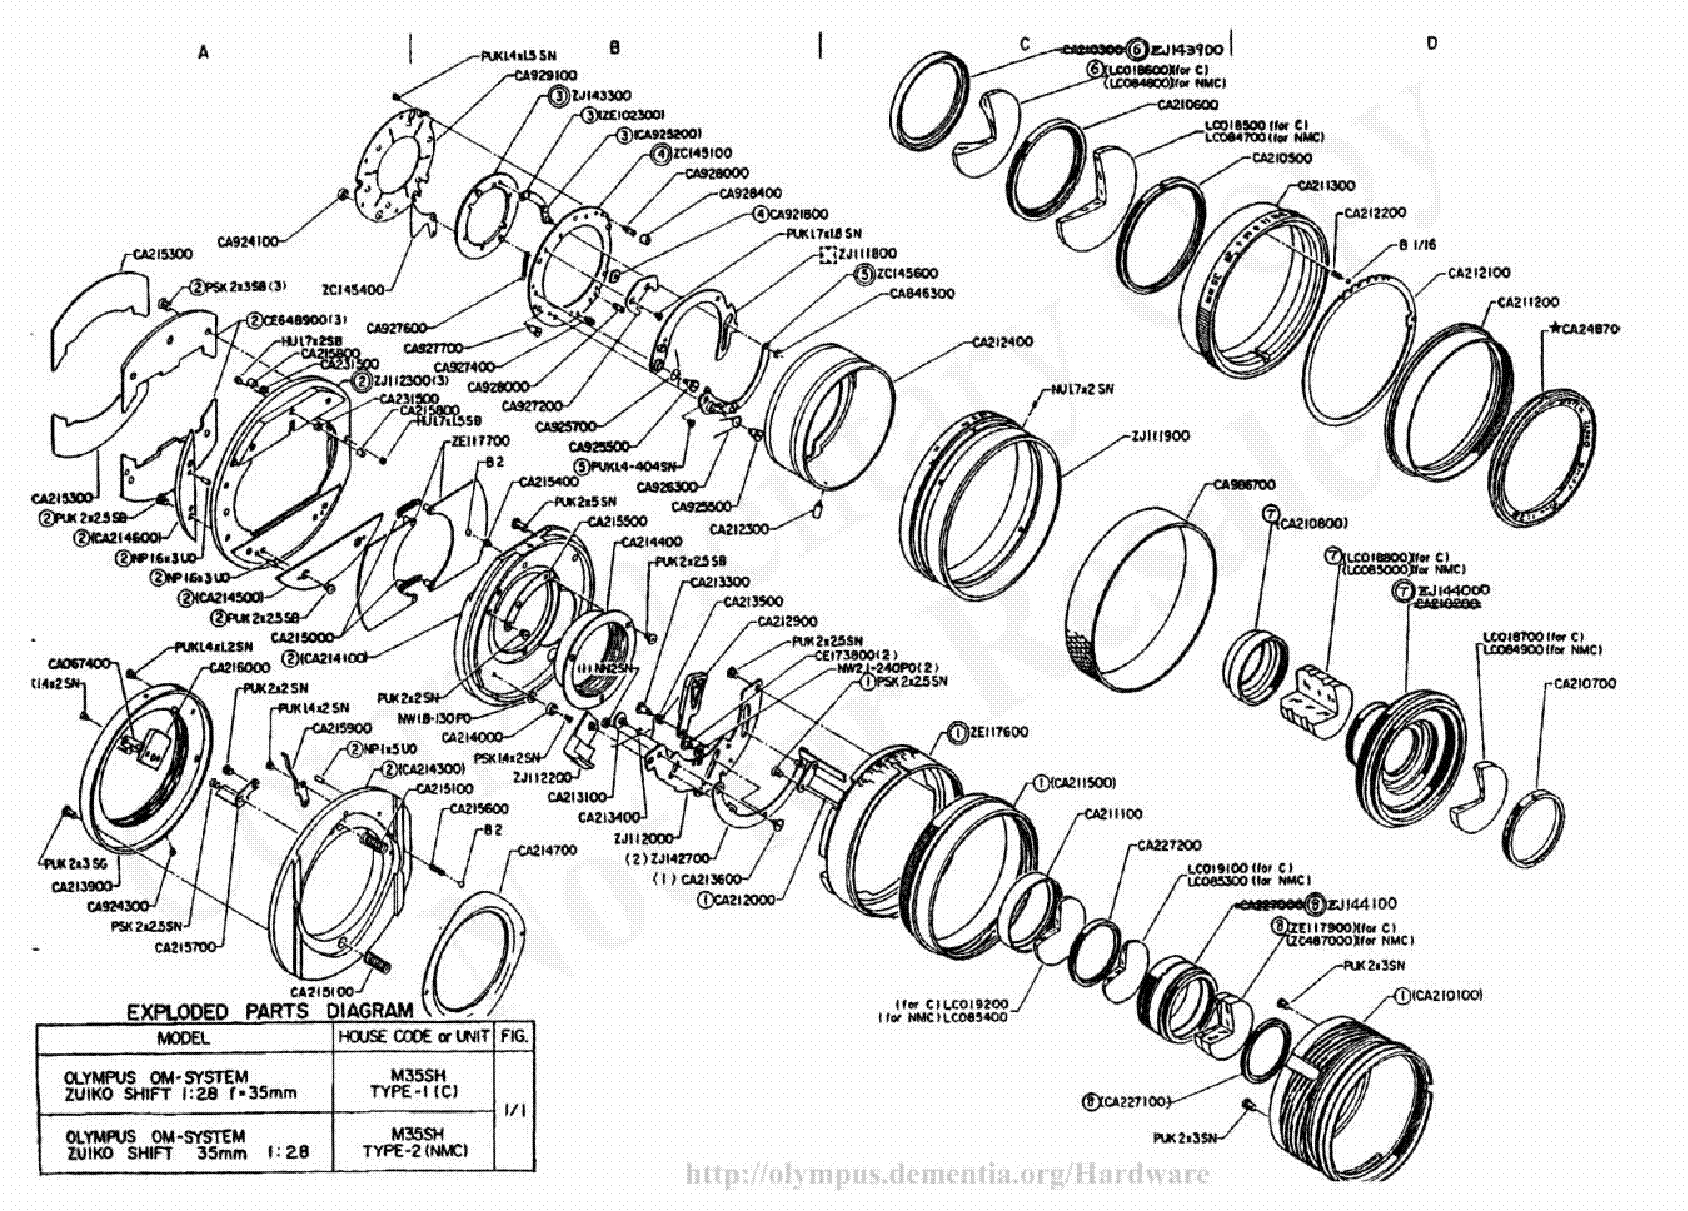 hight resolution of olympus 35mm f2 8 shift exploded parts diagram service manual 2nd page